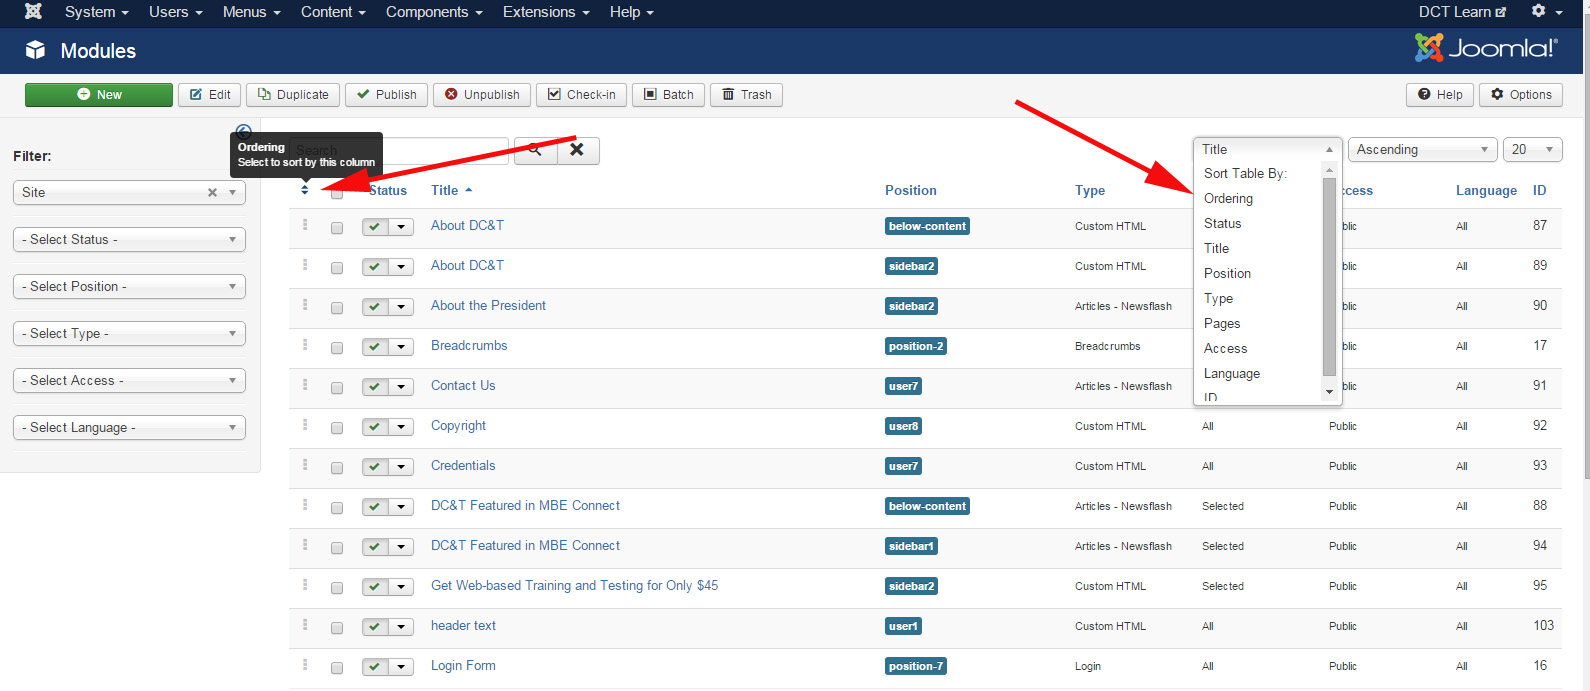 Joomla How to Change Order of Modules Step 1